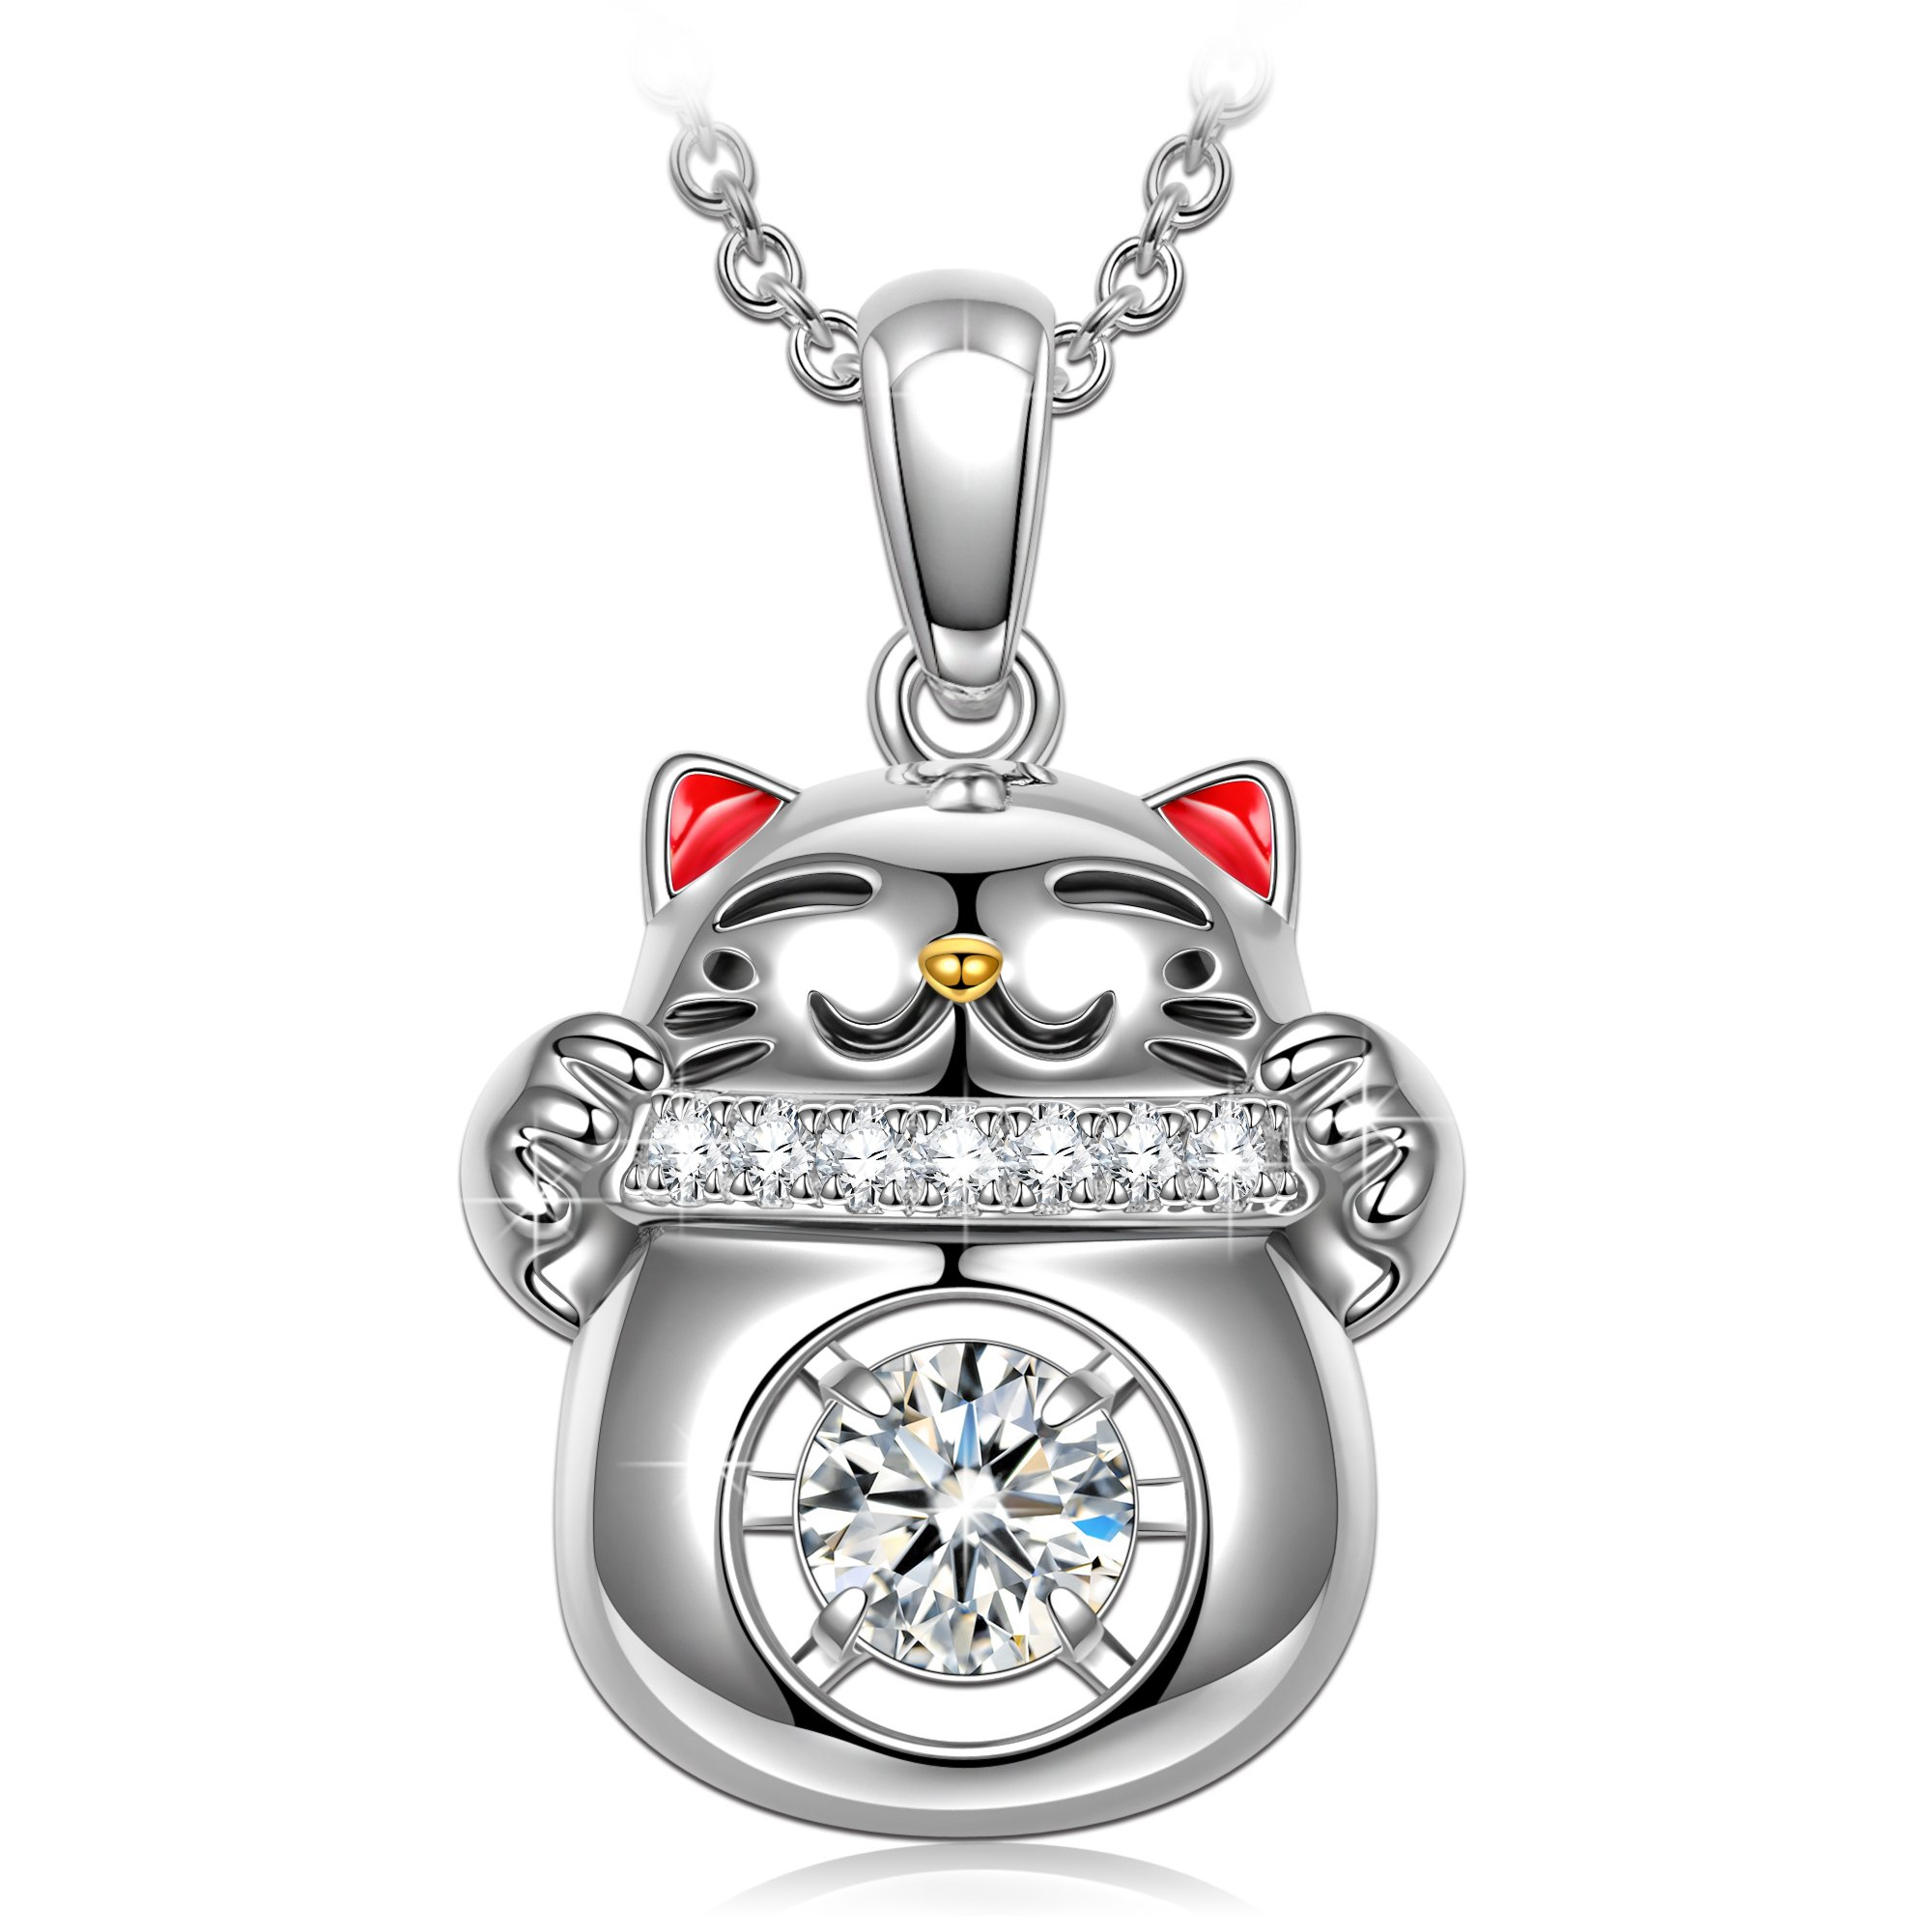 925 Sterling Silver Necklace Animal Necklace for Teen Girls Swarovski Crystal Dancing Stone Cat Necklaces for Grandaughter Niece Year Old Girl Christmas Birthday Gifts